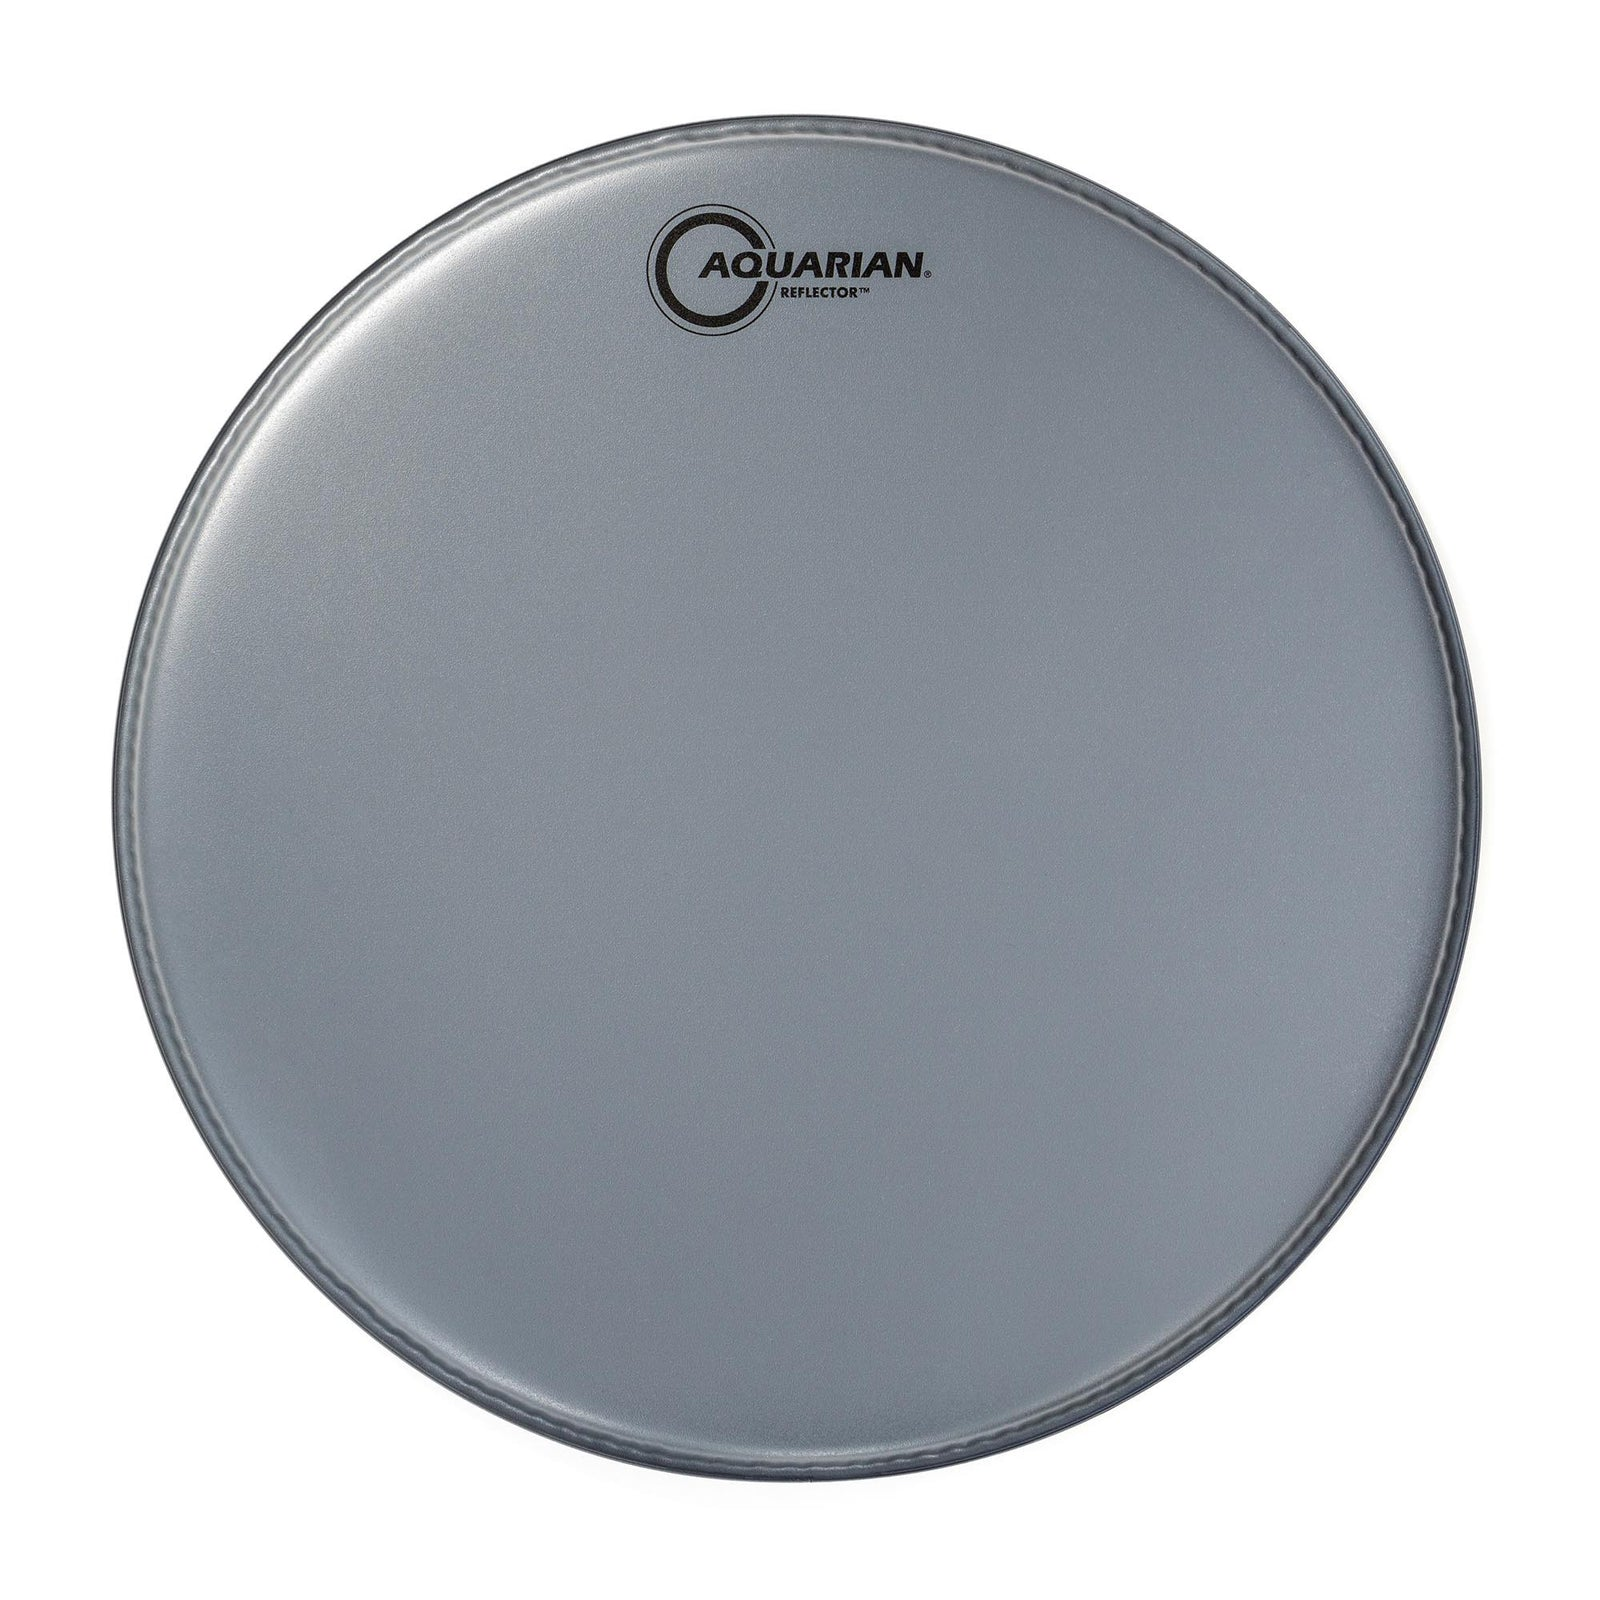 "Aquarian 13"" Reflector Texture Coated Snare Head"